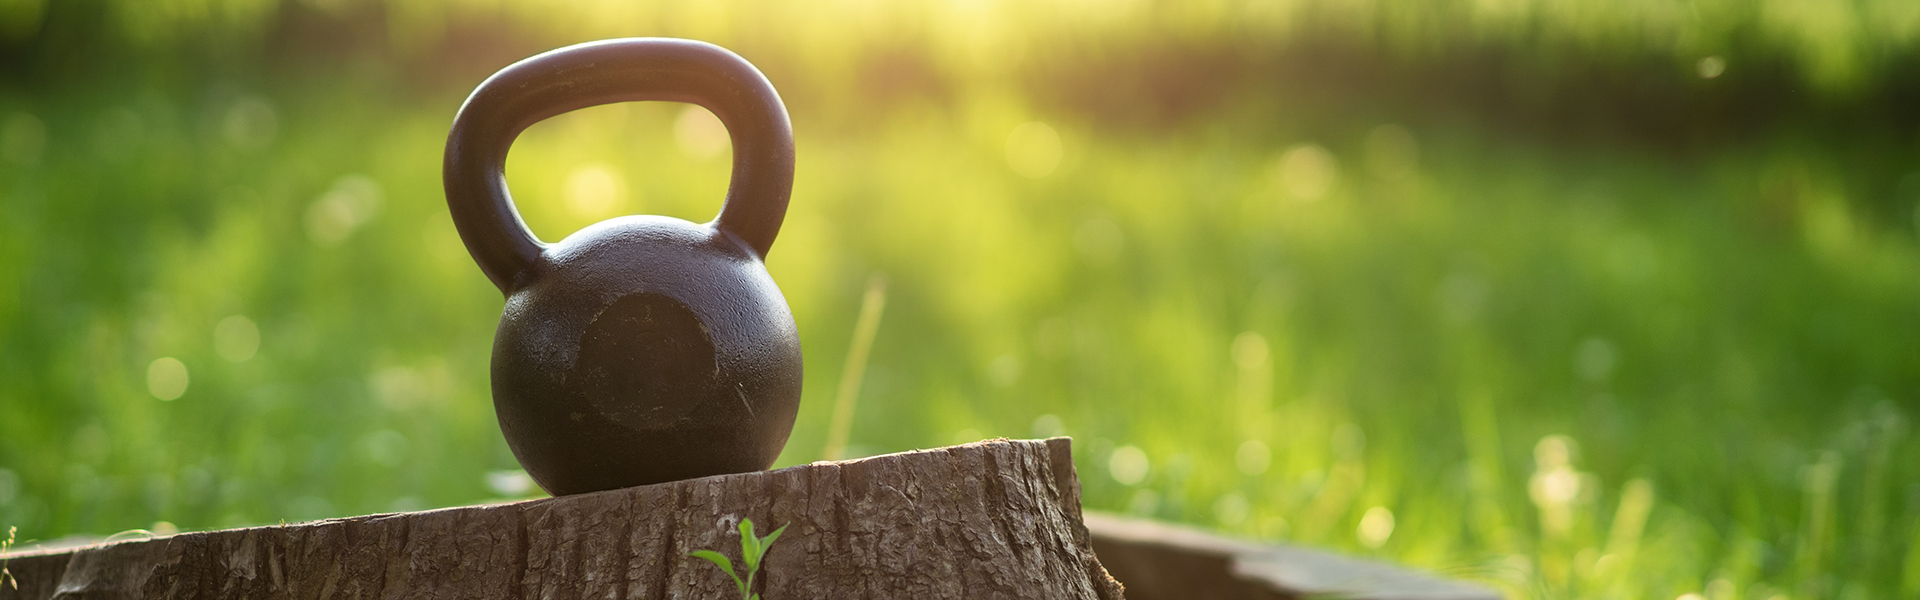 Kettlebell in nature